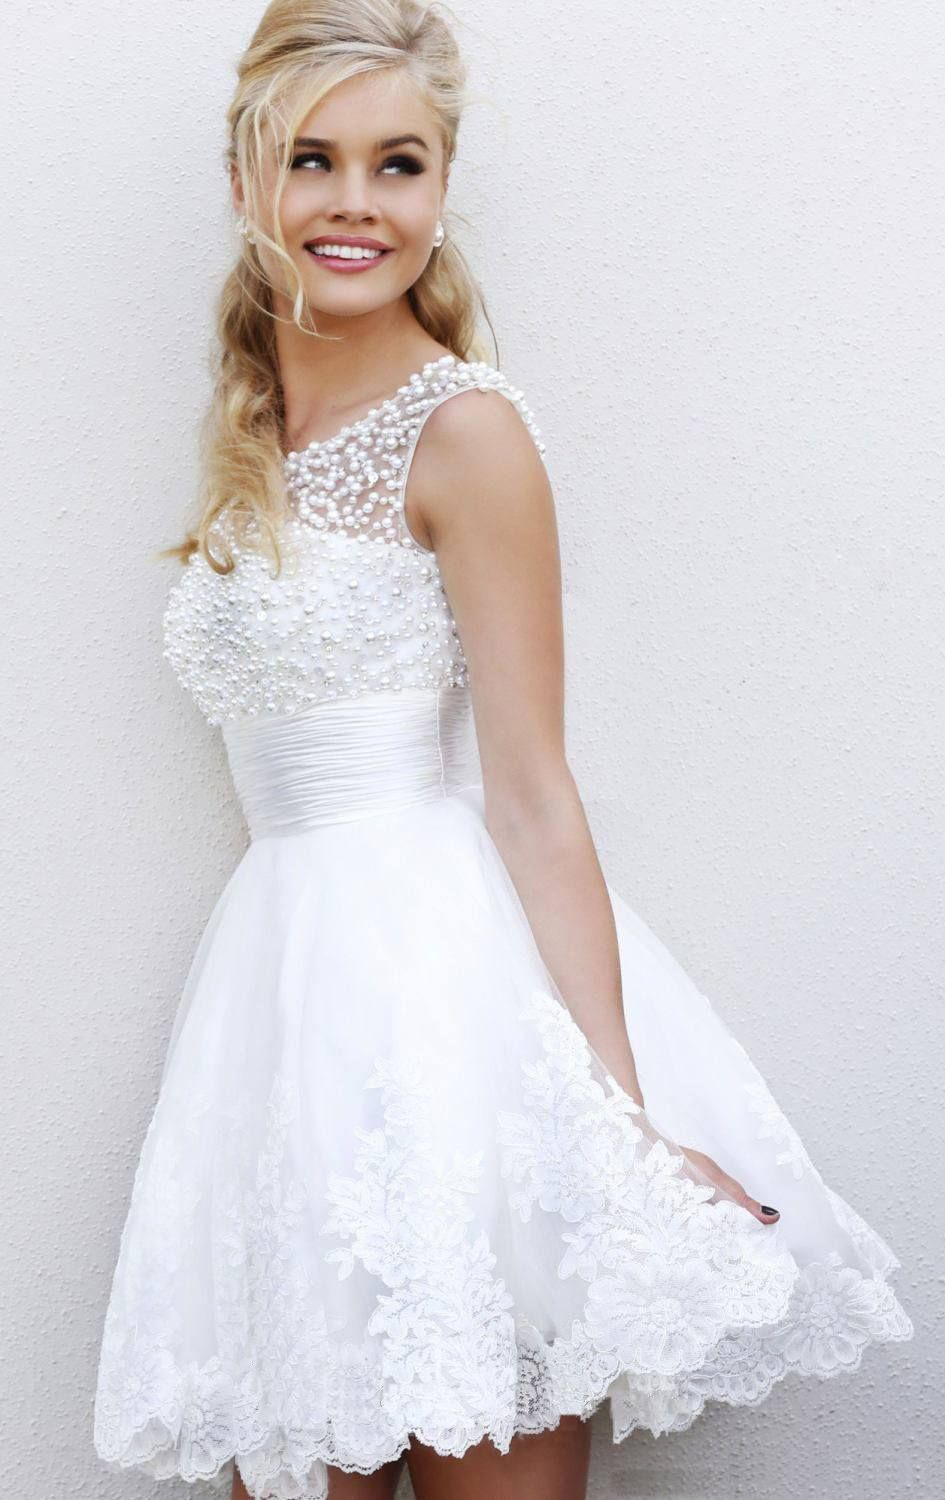 Ava lace short wedding dress short wedding dresses wedding dress